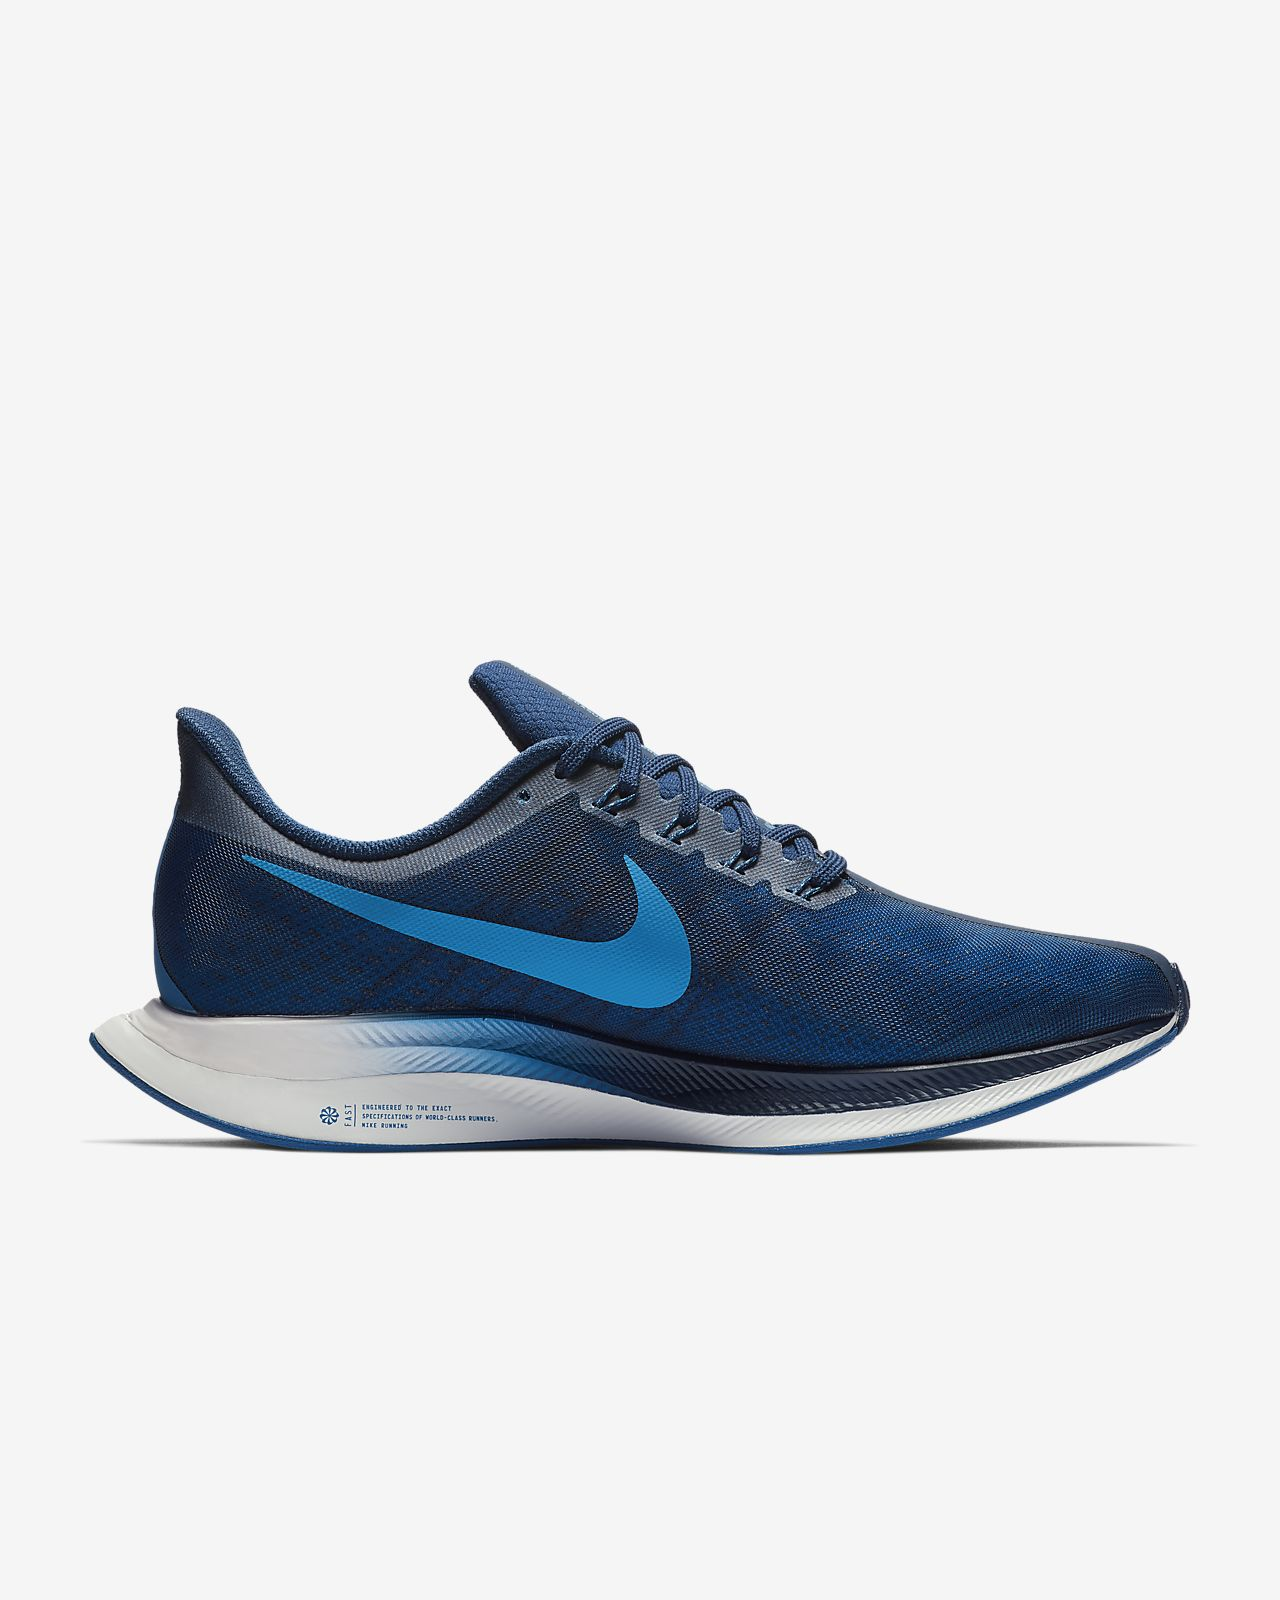 new arrival f3975 cd89e ... Nike Zoom Pegasus Turbo Men s Running Shoe